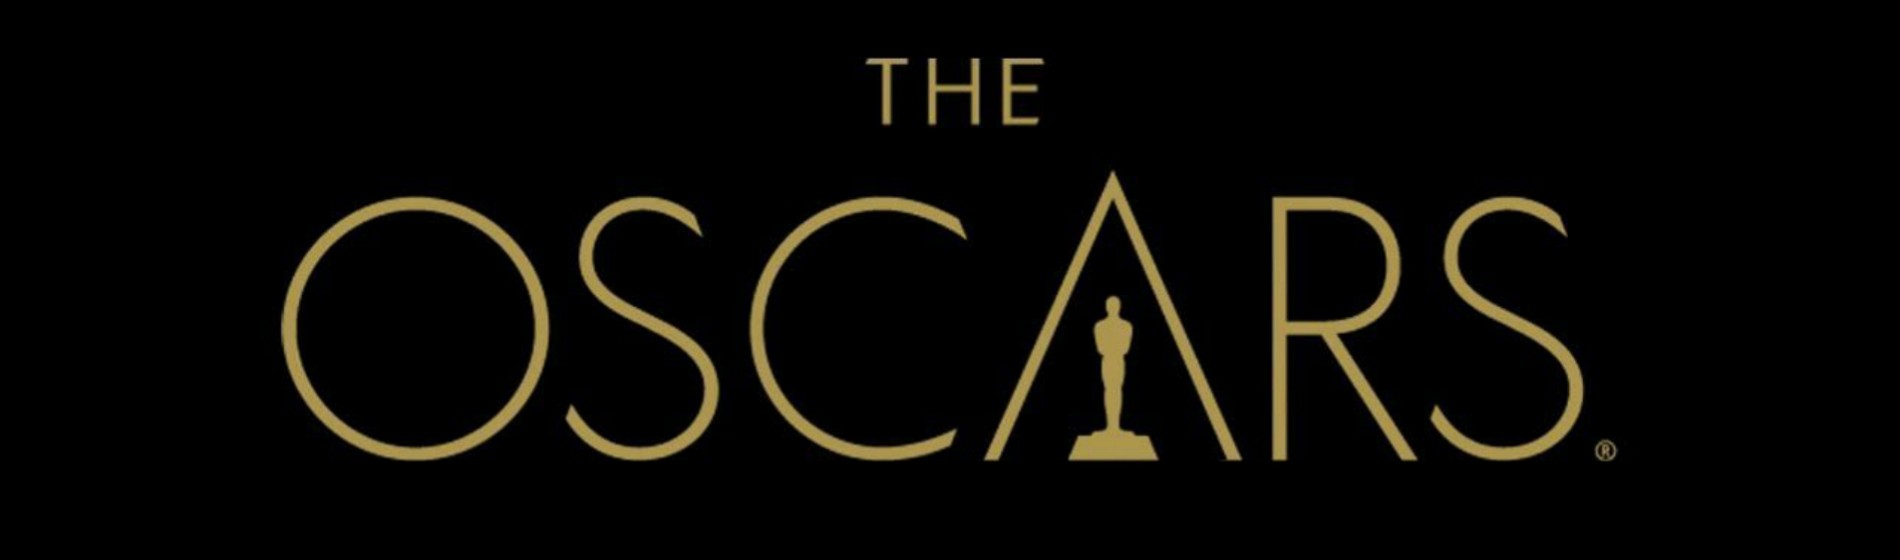 The-Oscars-Header-Black-Gold-with-trophy